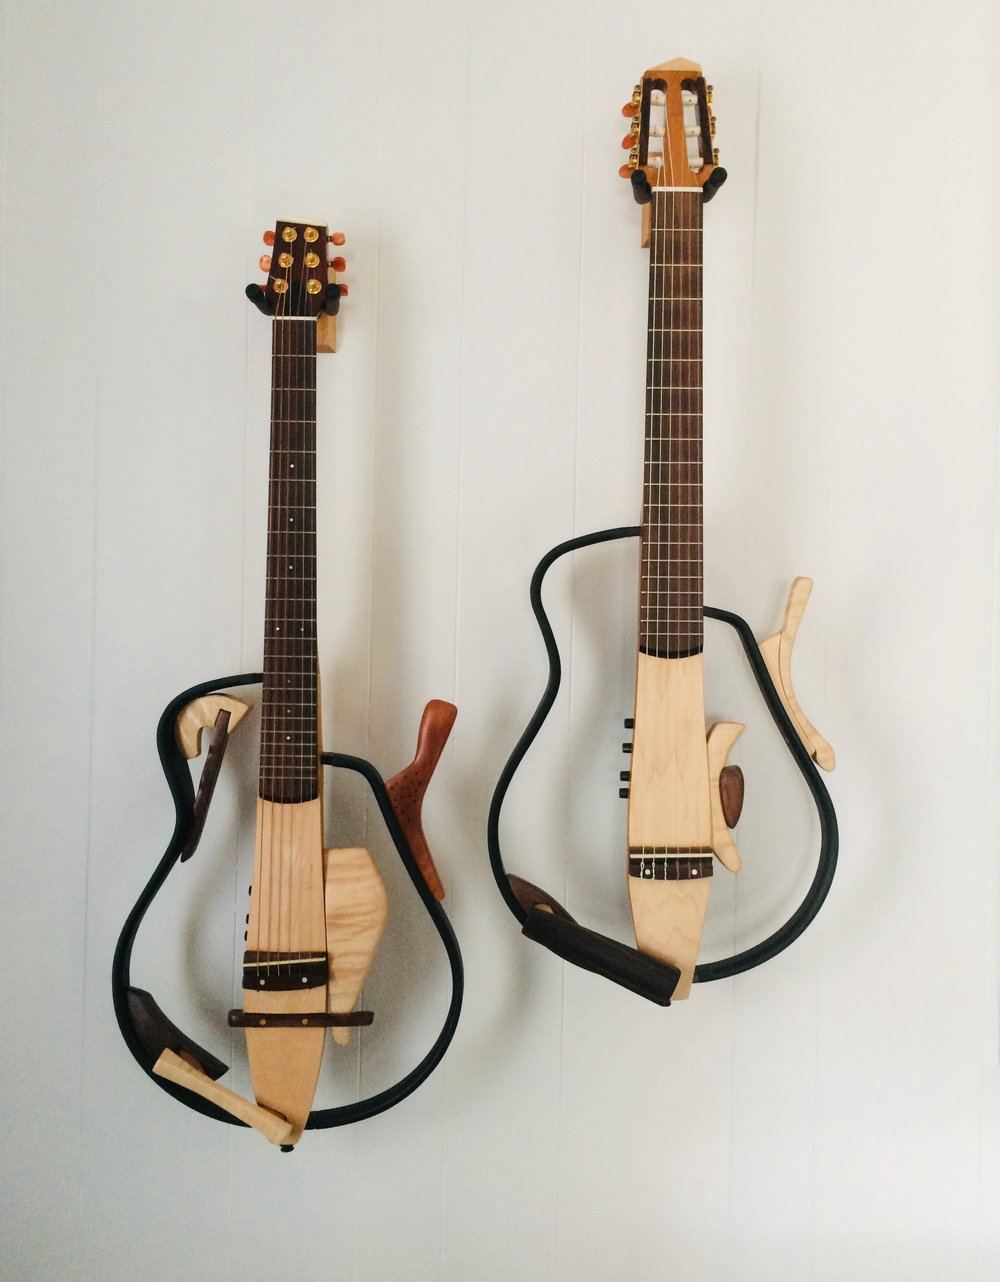 Two redesigned Yamaha Silent guitars……$3500.00 each